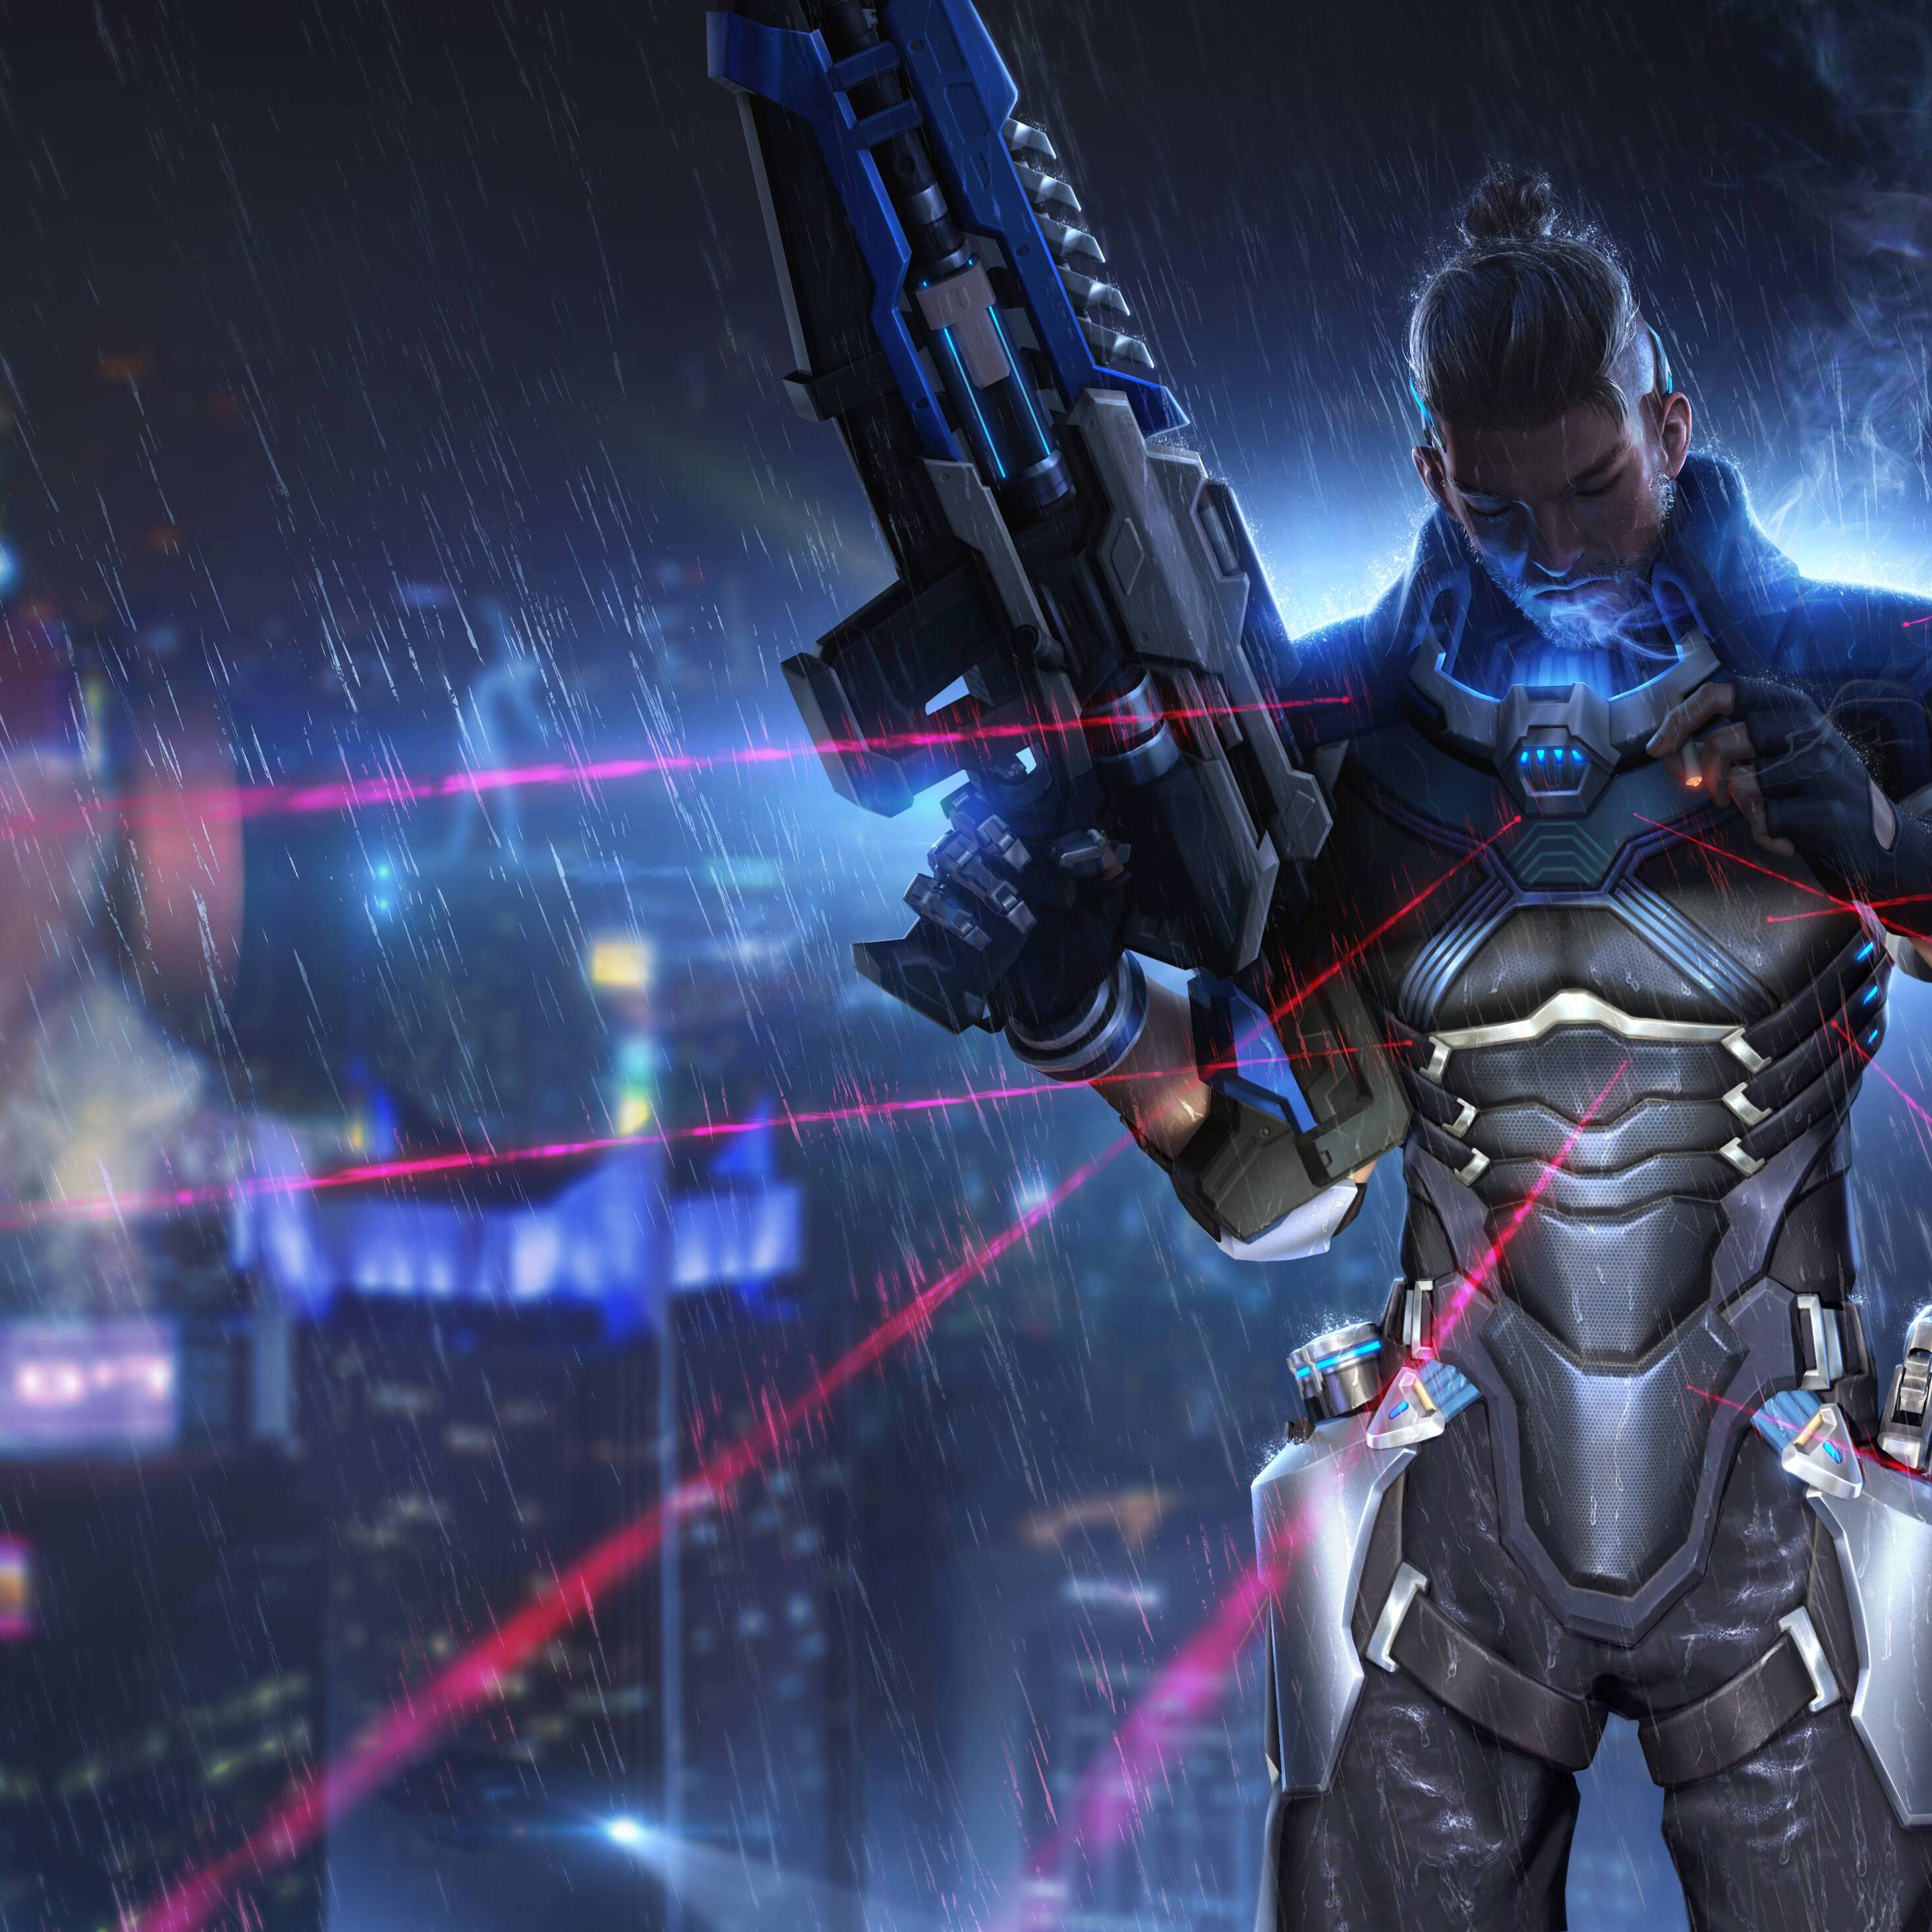 cyber hunter_2932x2932 Cyber Hunter Ipad Pro Retina Display HD 4k Wallpapers, Images, Backgrounds ...